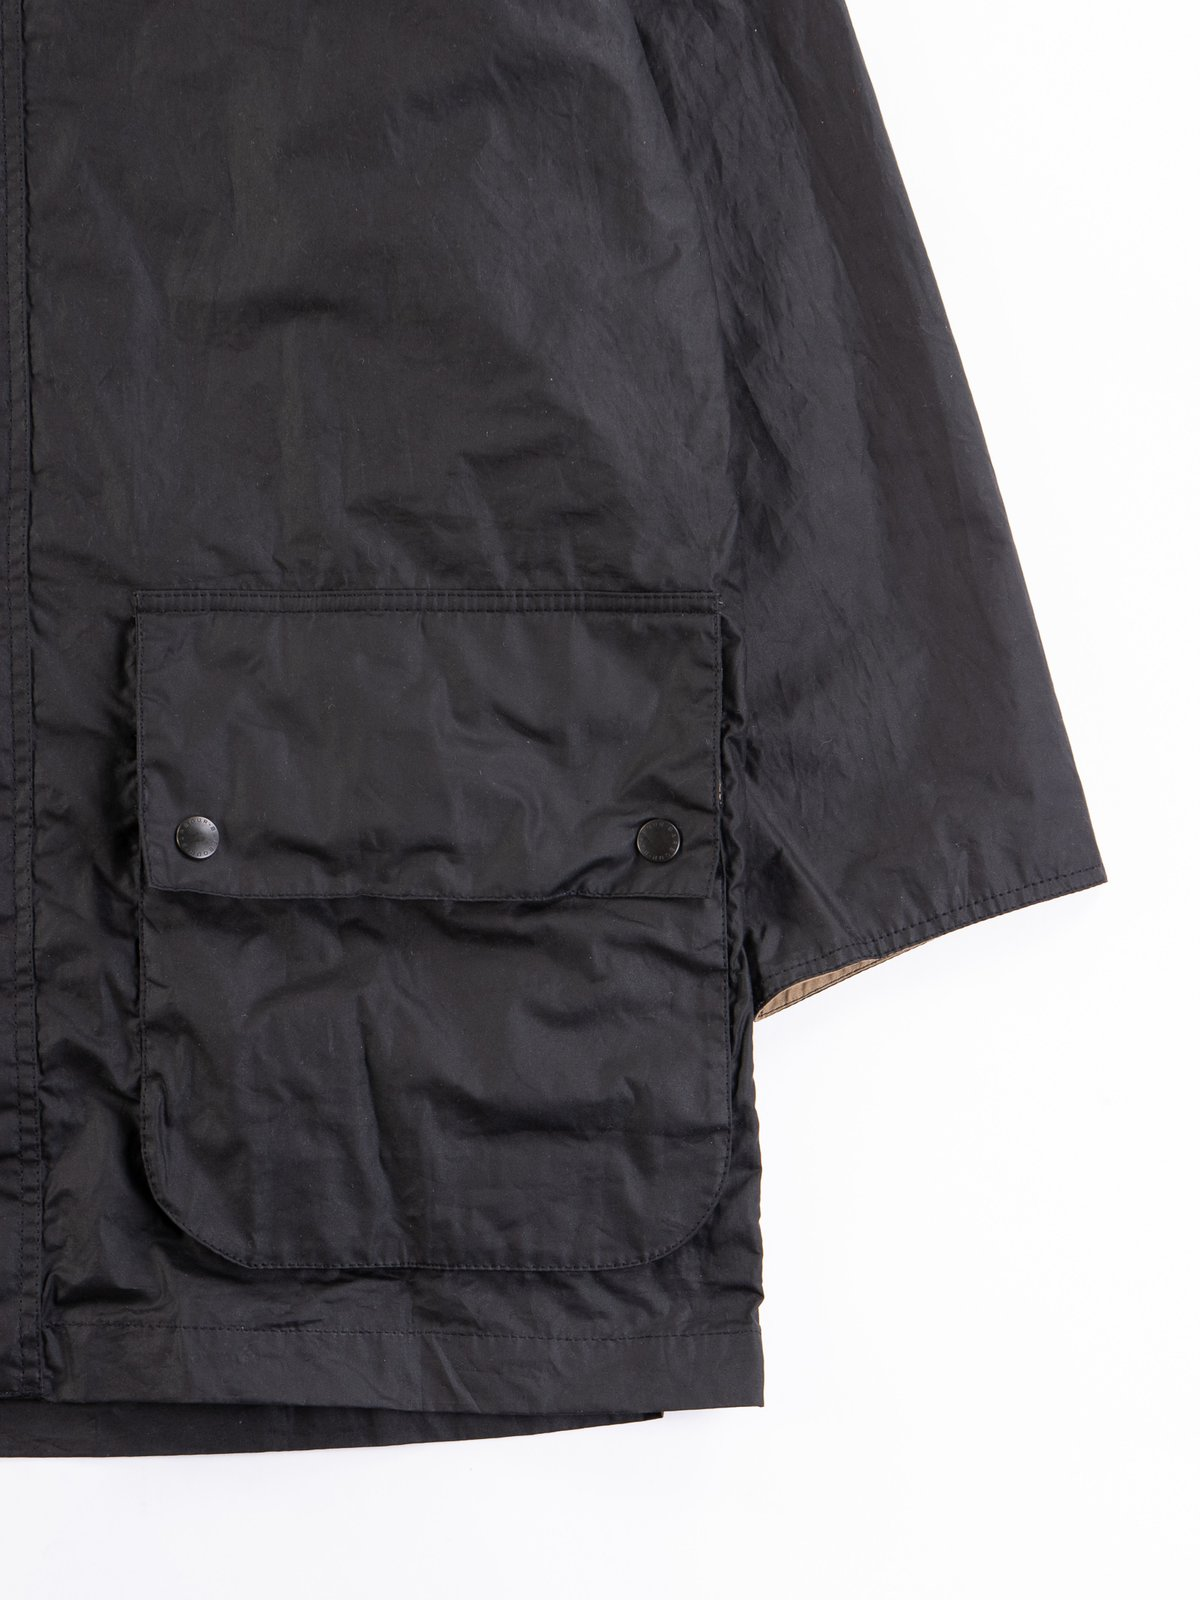 Black Hiking Waxed Cotton Jacket - Image 4